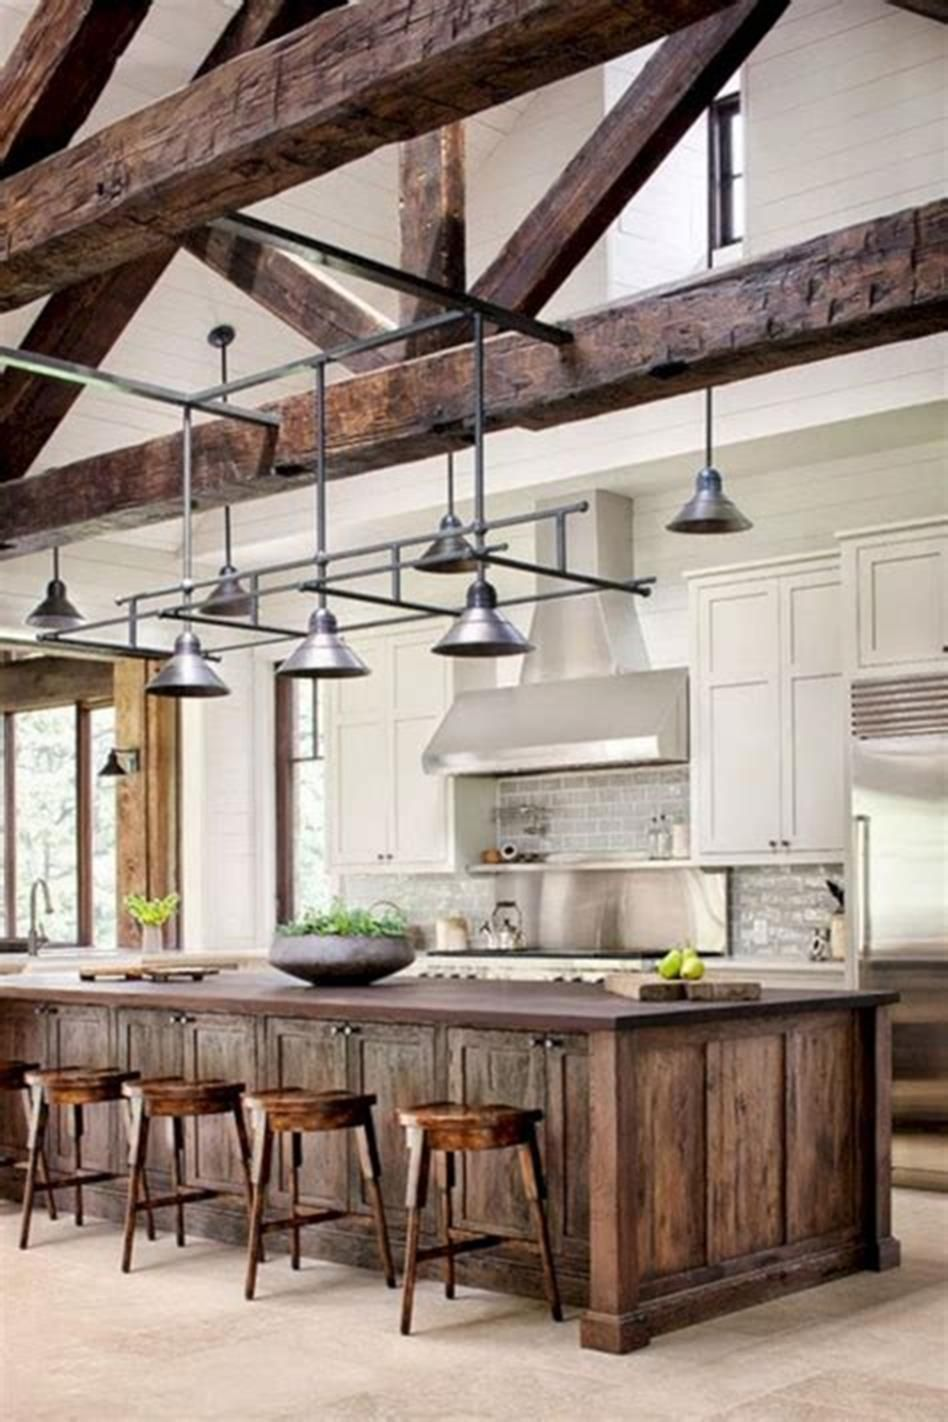 35 inspiring industrial farmhouse decorating and design ideas in 2020 industrial style kitchen on kitchen decor themes rustic id=75358